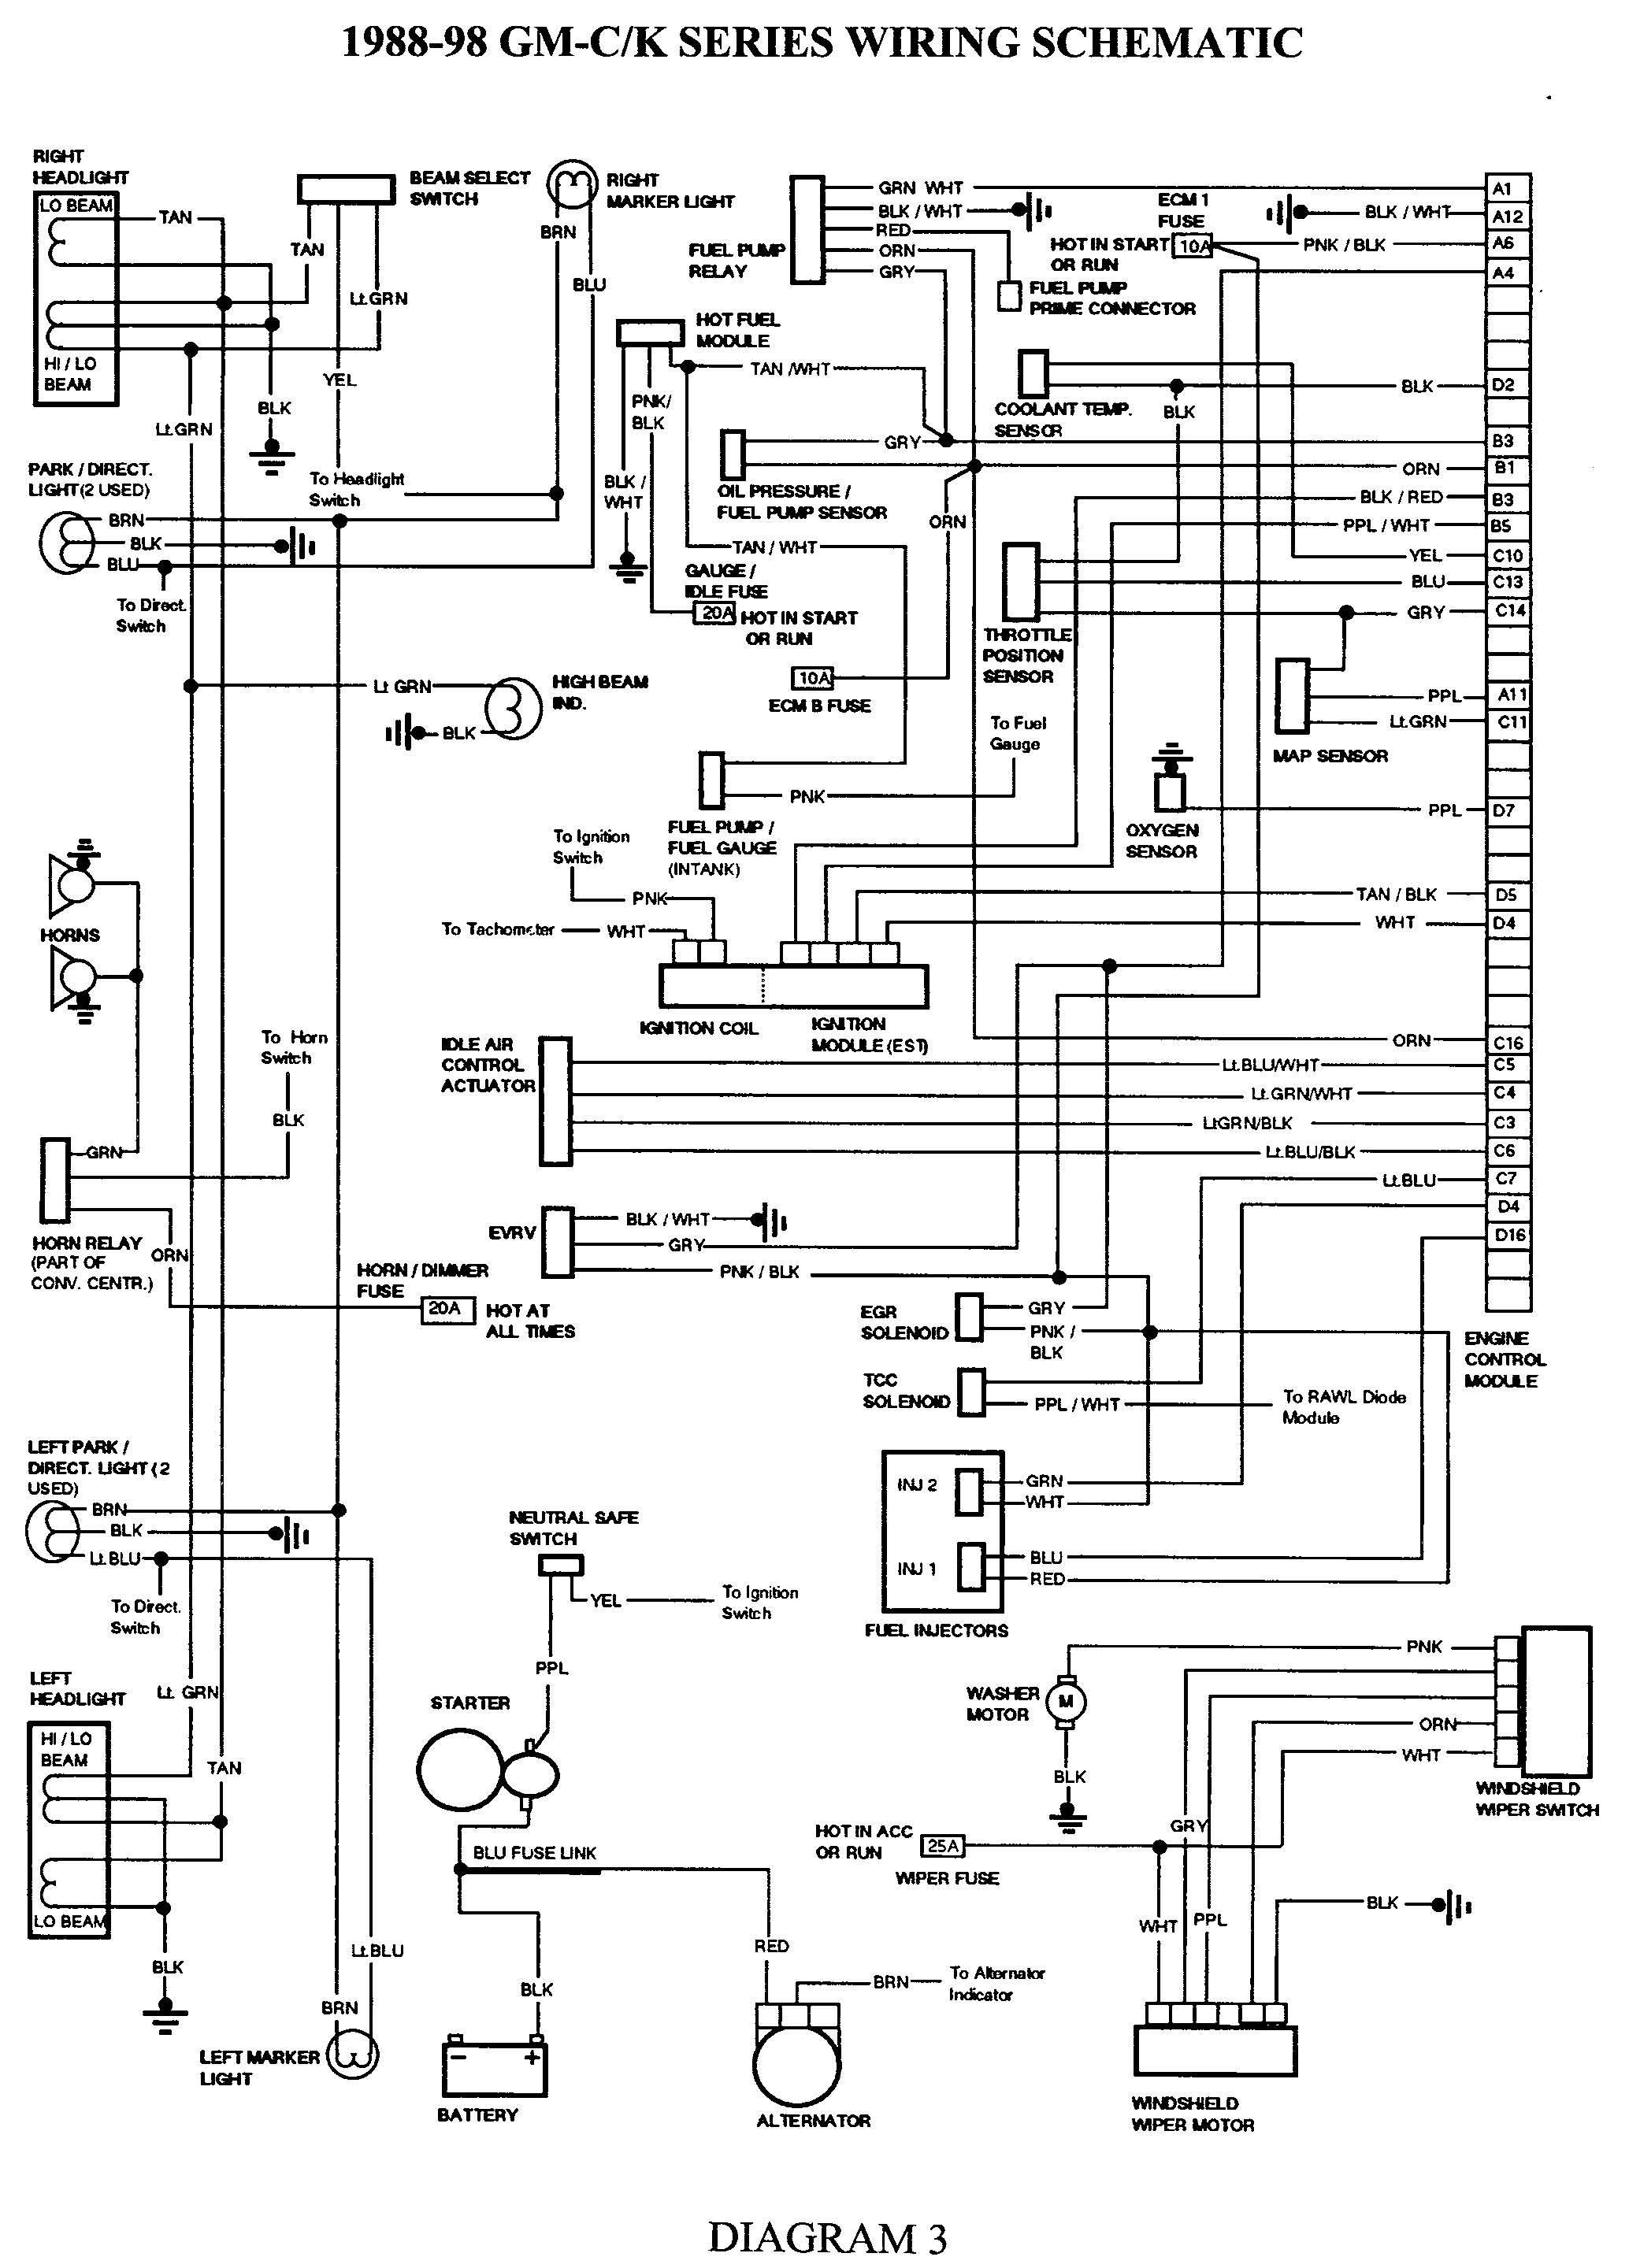 Wiring Diagram for Gas 99 Club Car Voltage Regulator Gmgm Wiring Harness Diagram 88 98 with Images Of Wiring Diagram for Gas 99 Club Car Voltage Regulator